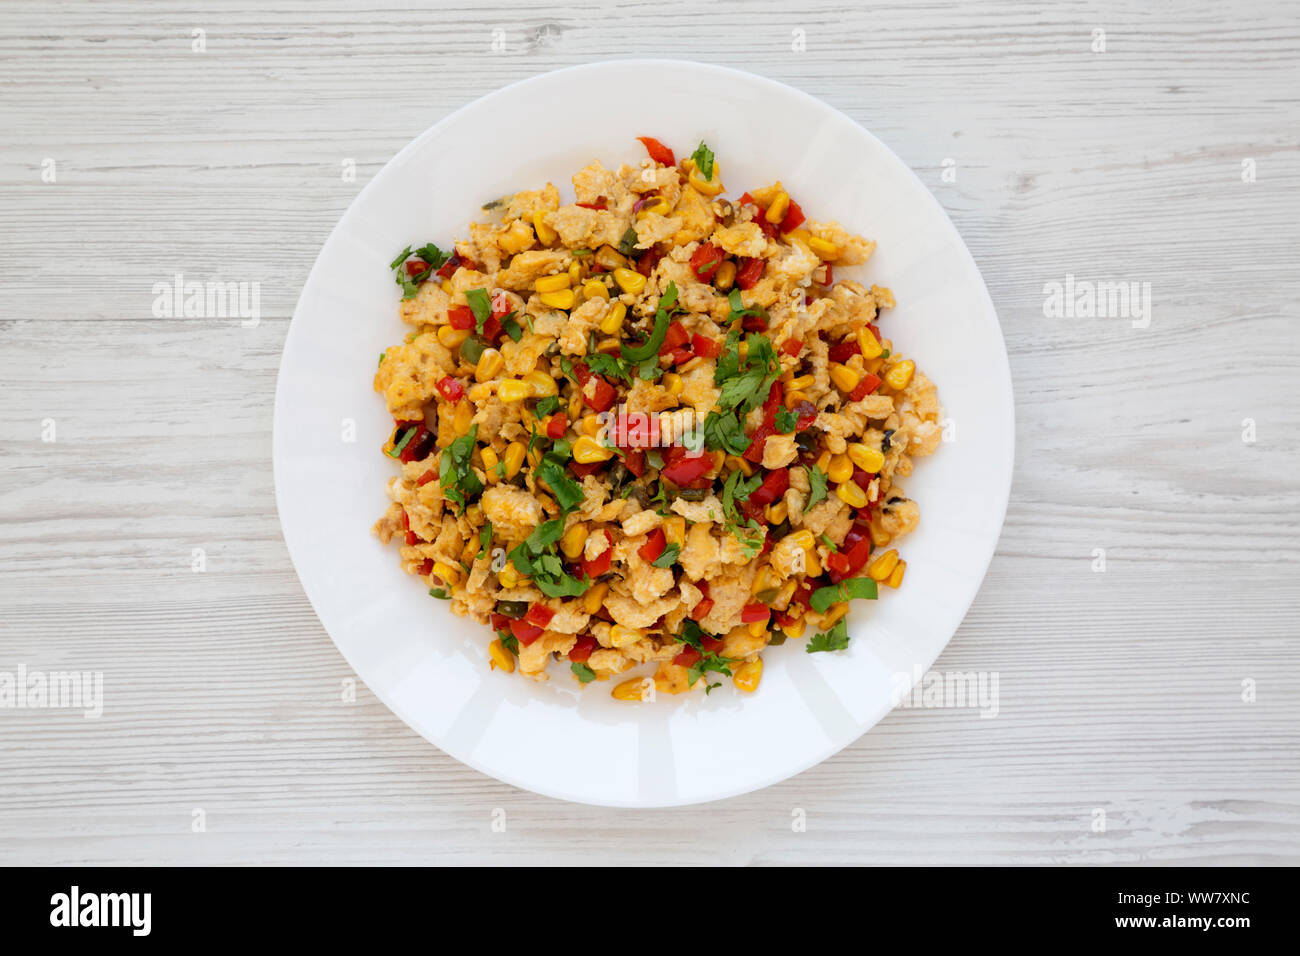 Homemade southwestern egg scramble on a white plate on a white wooden background, top view. Flat lay, overhead, from above. Stock Photo